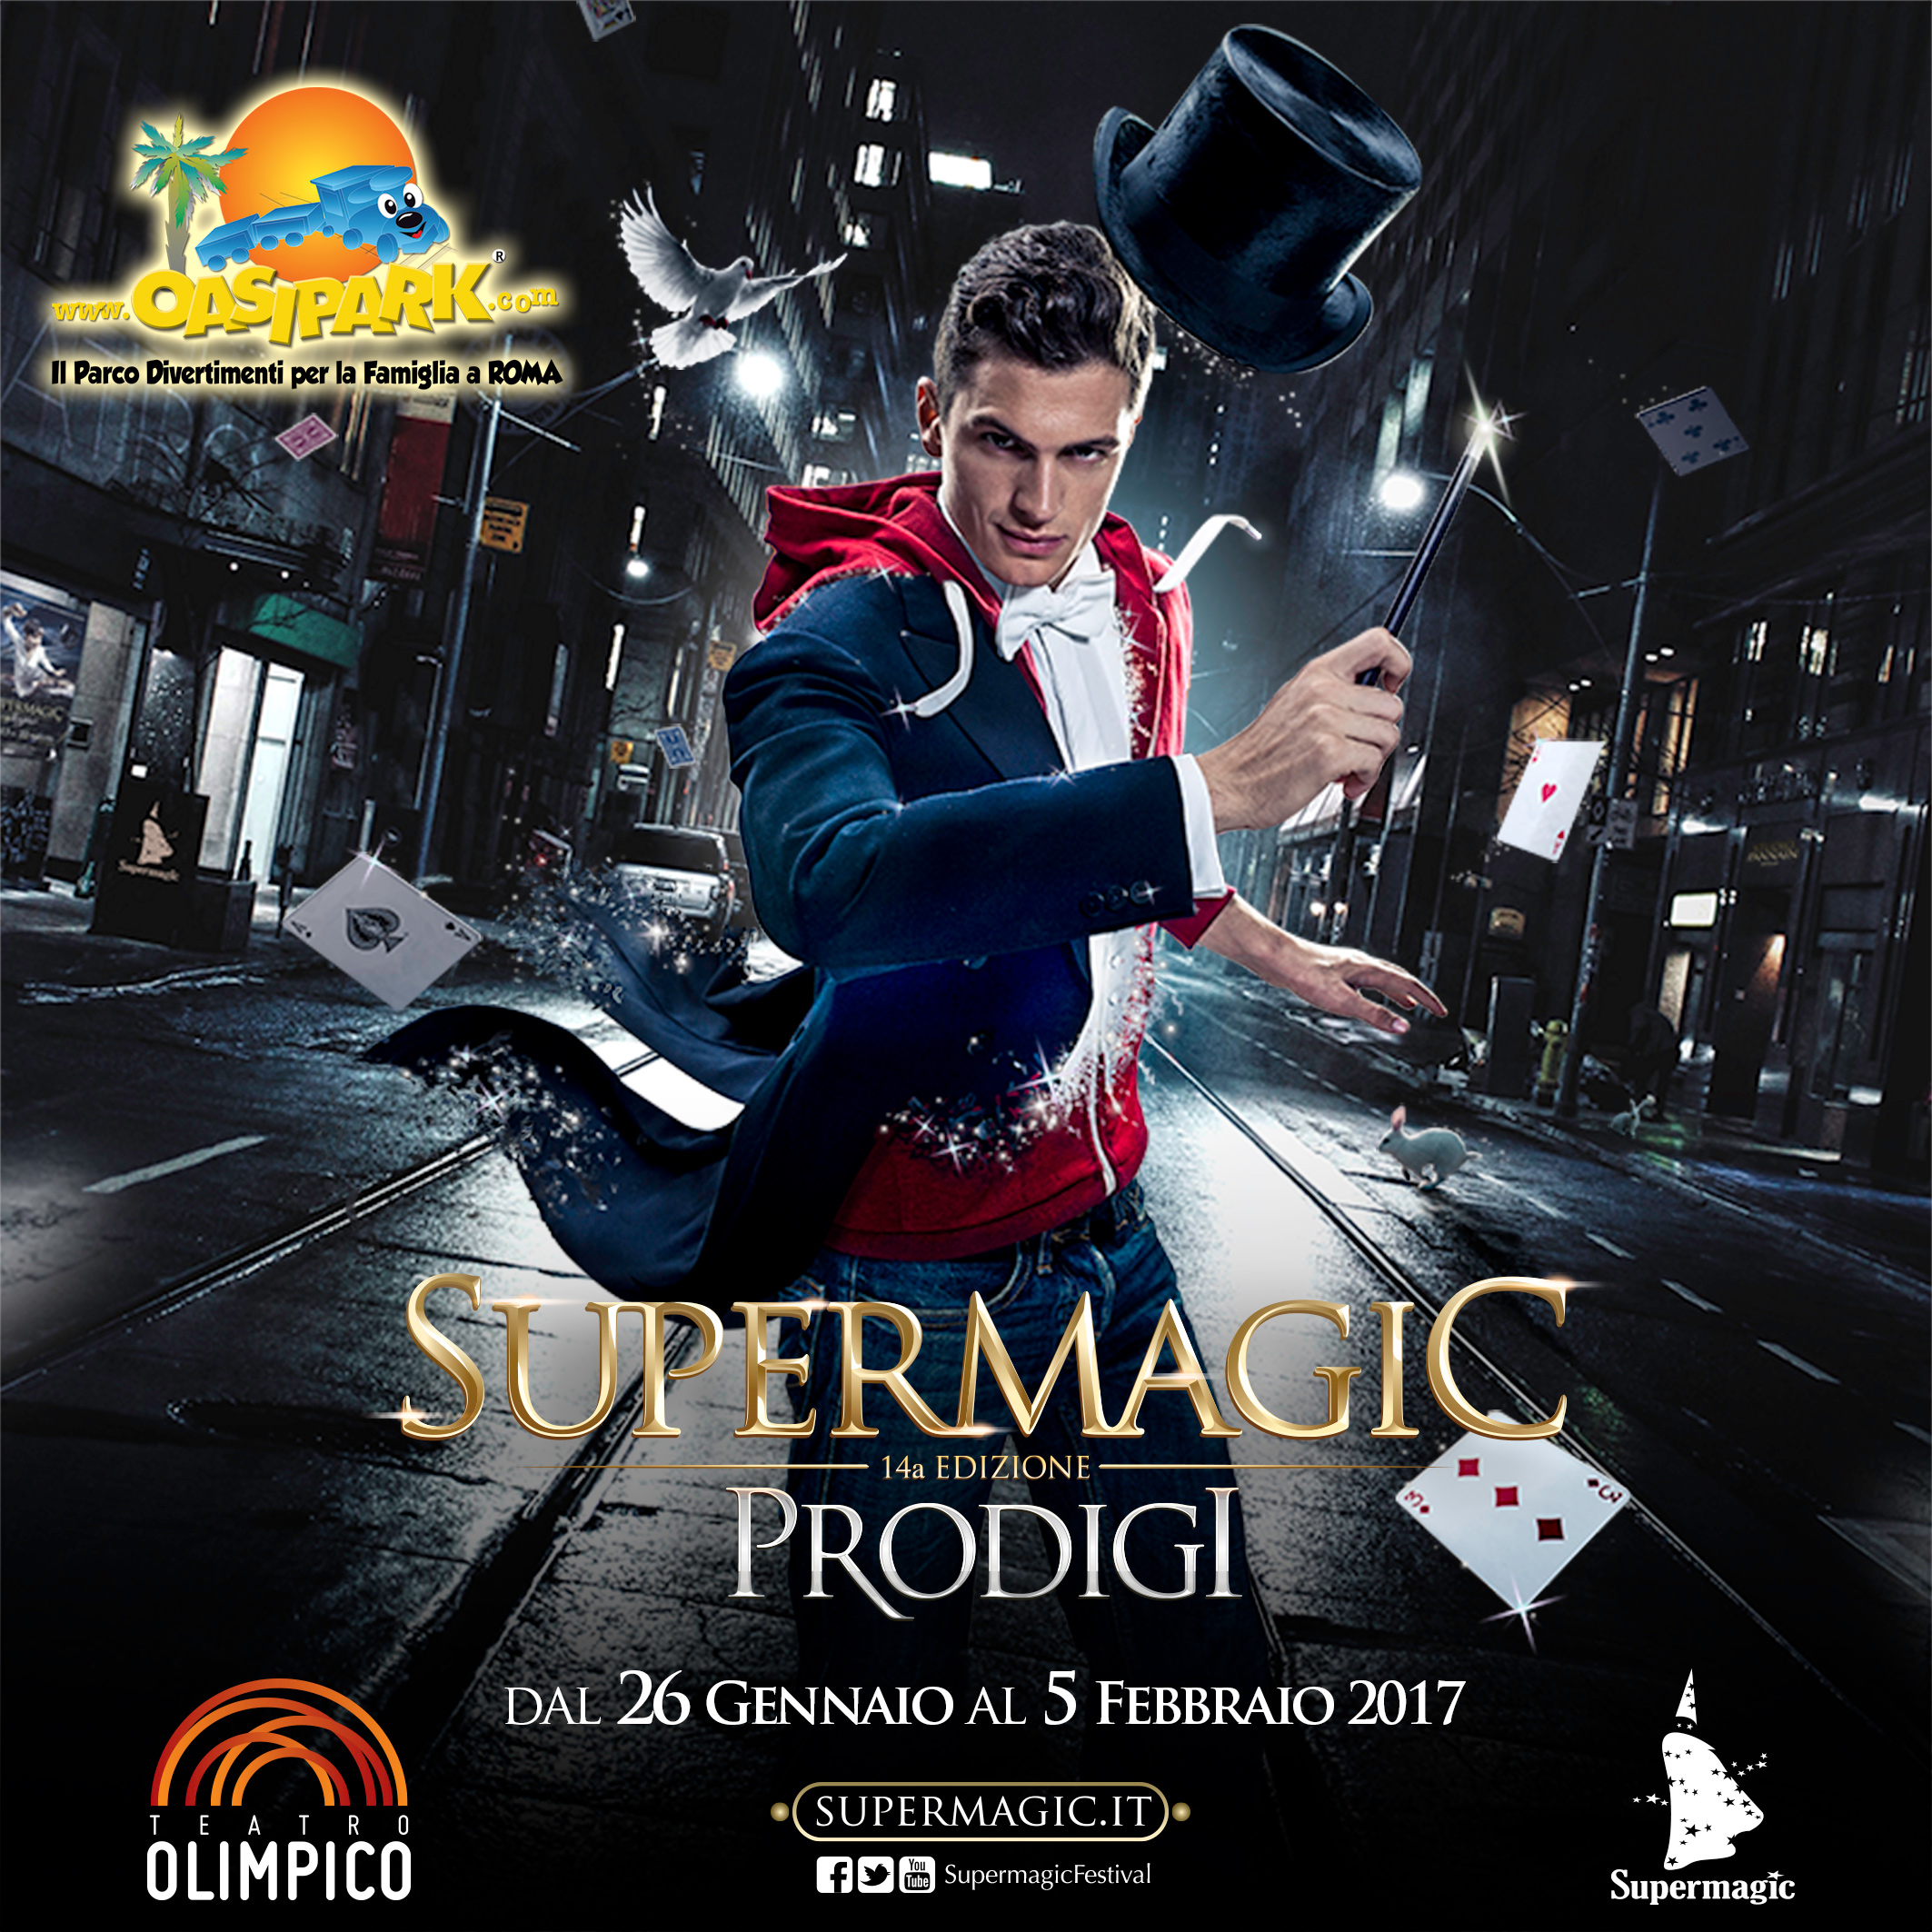 Supermagic 2017 Con OasiPark Divertimento Assicurato